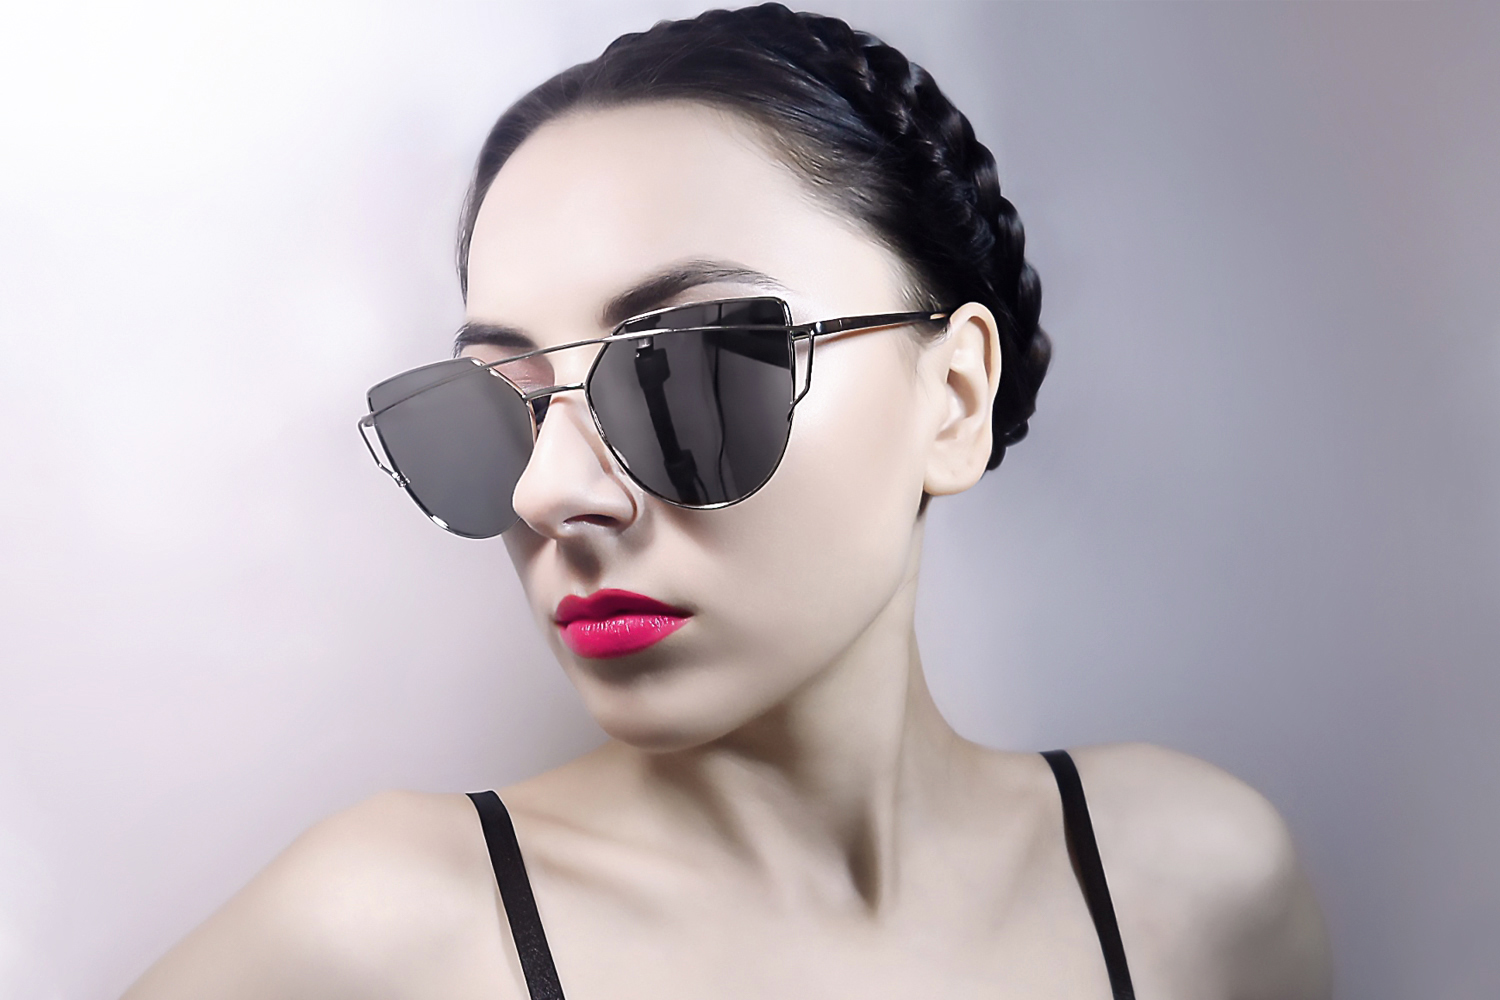 woman on a plain background with updo hairstyle is wearing and oversized mirrored, aviator sunglasses